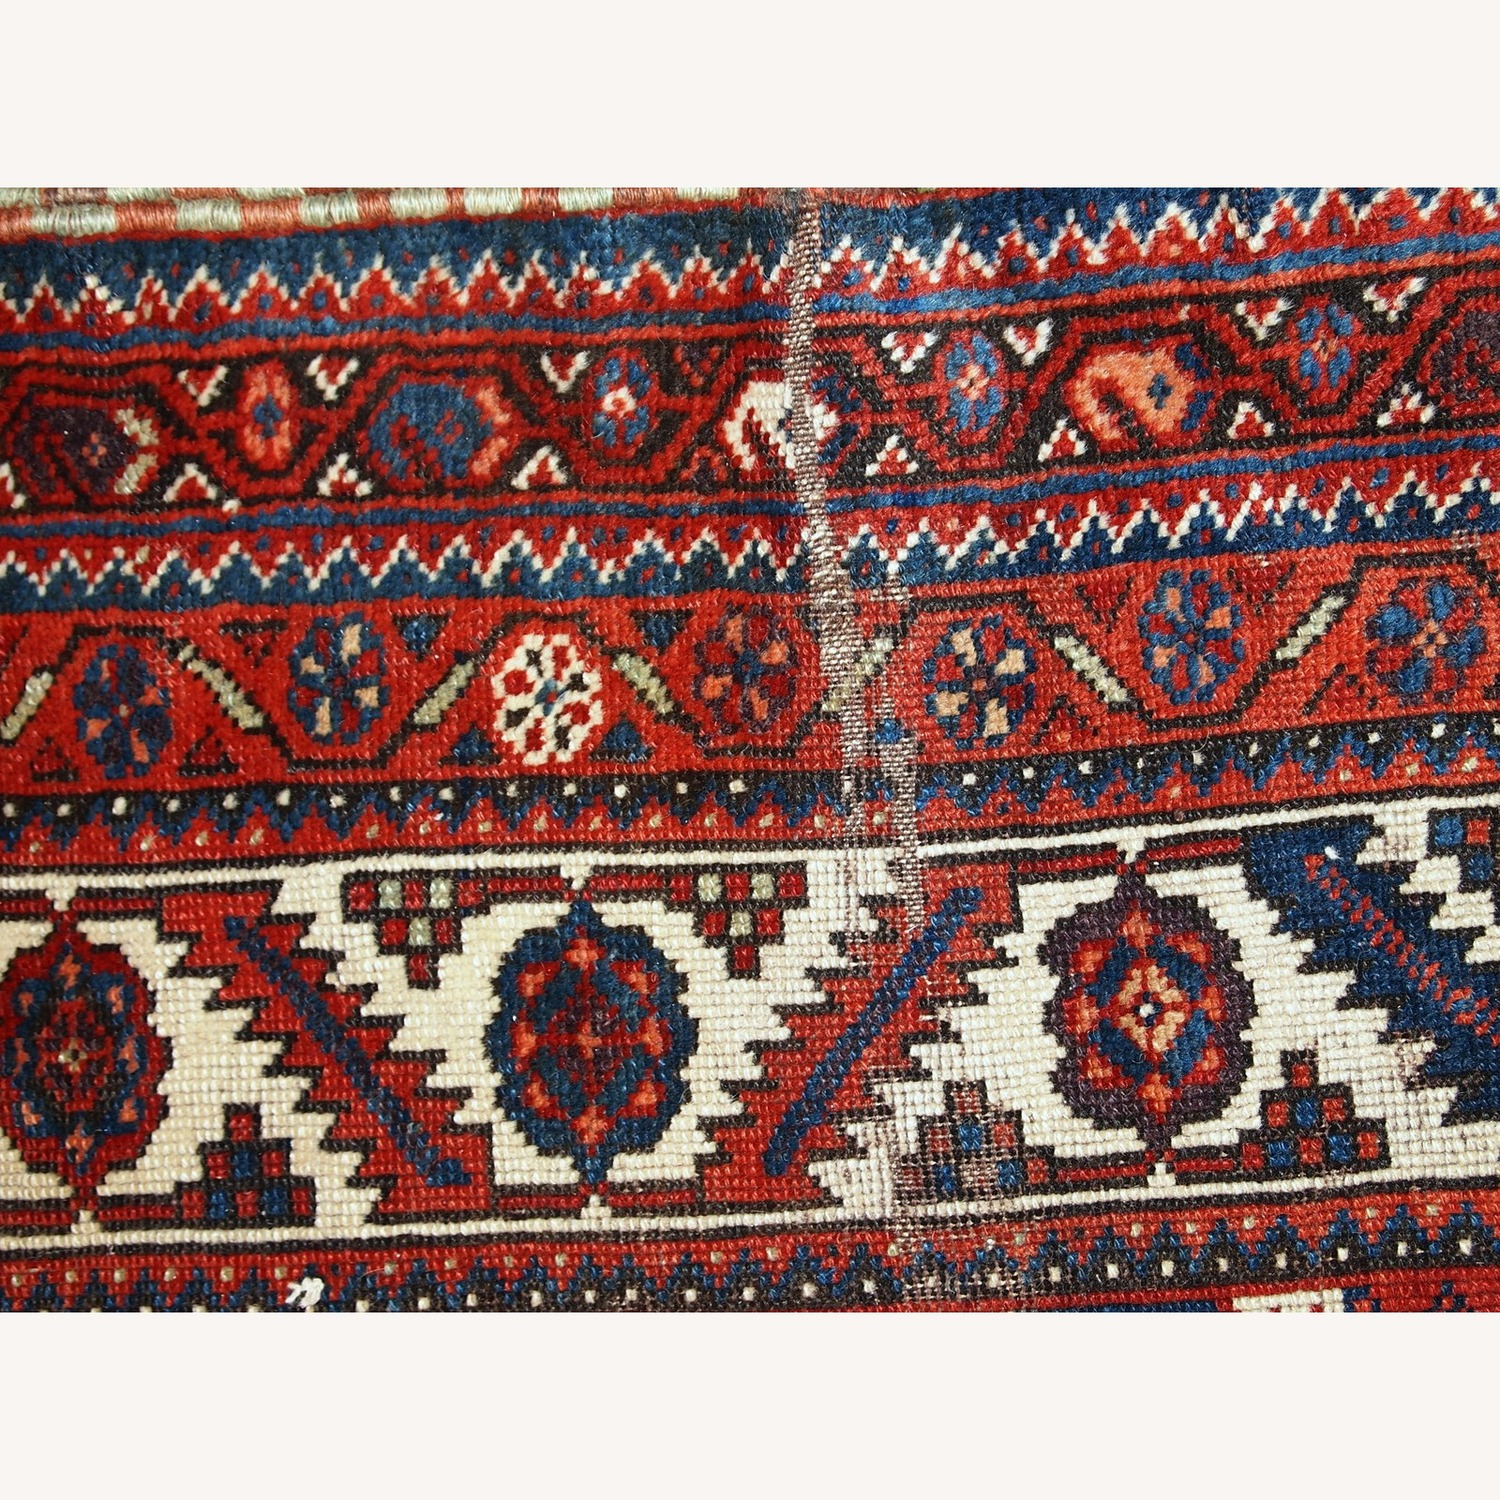 Handmade Antique Distressed Persian Shiraz Rug - image-3